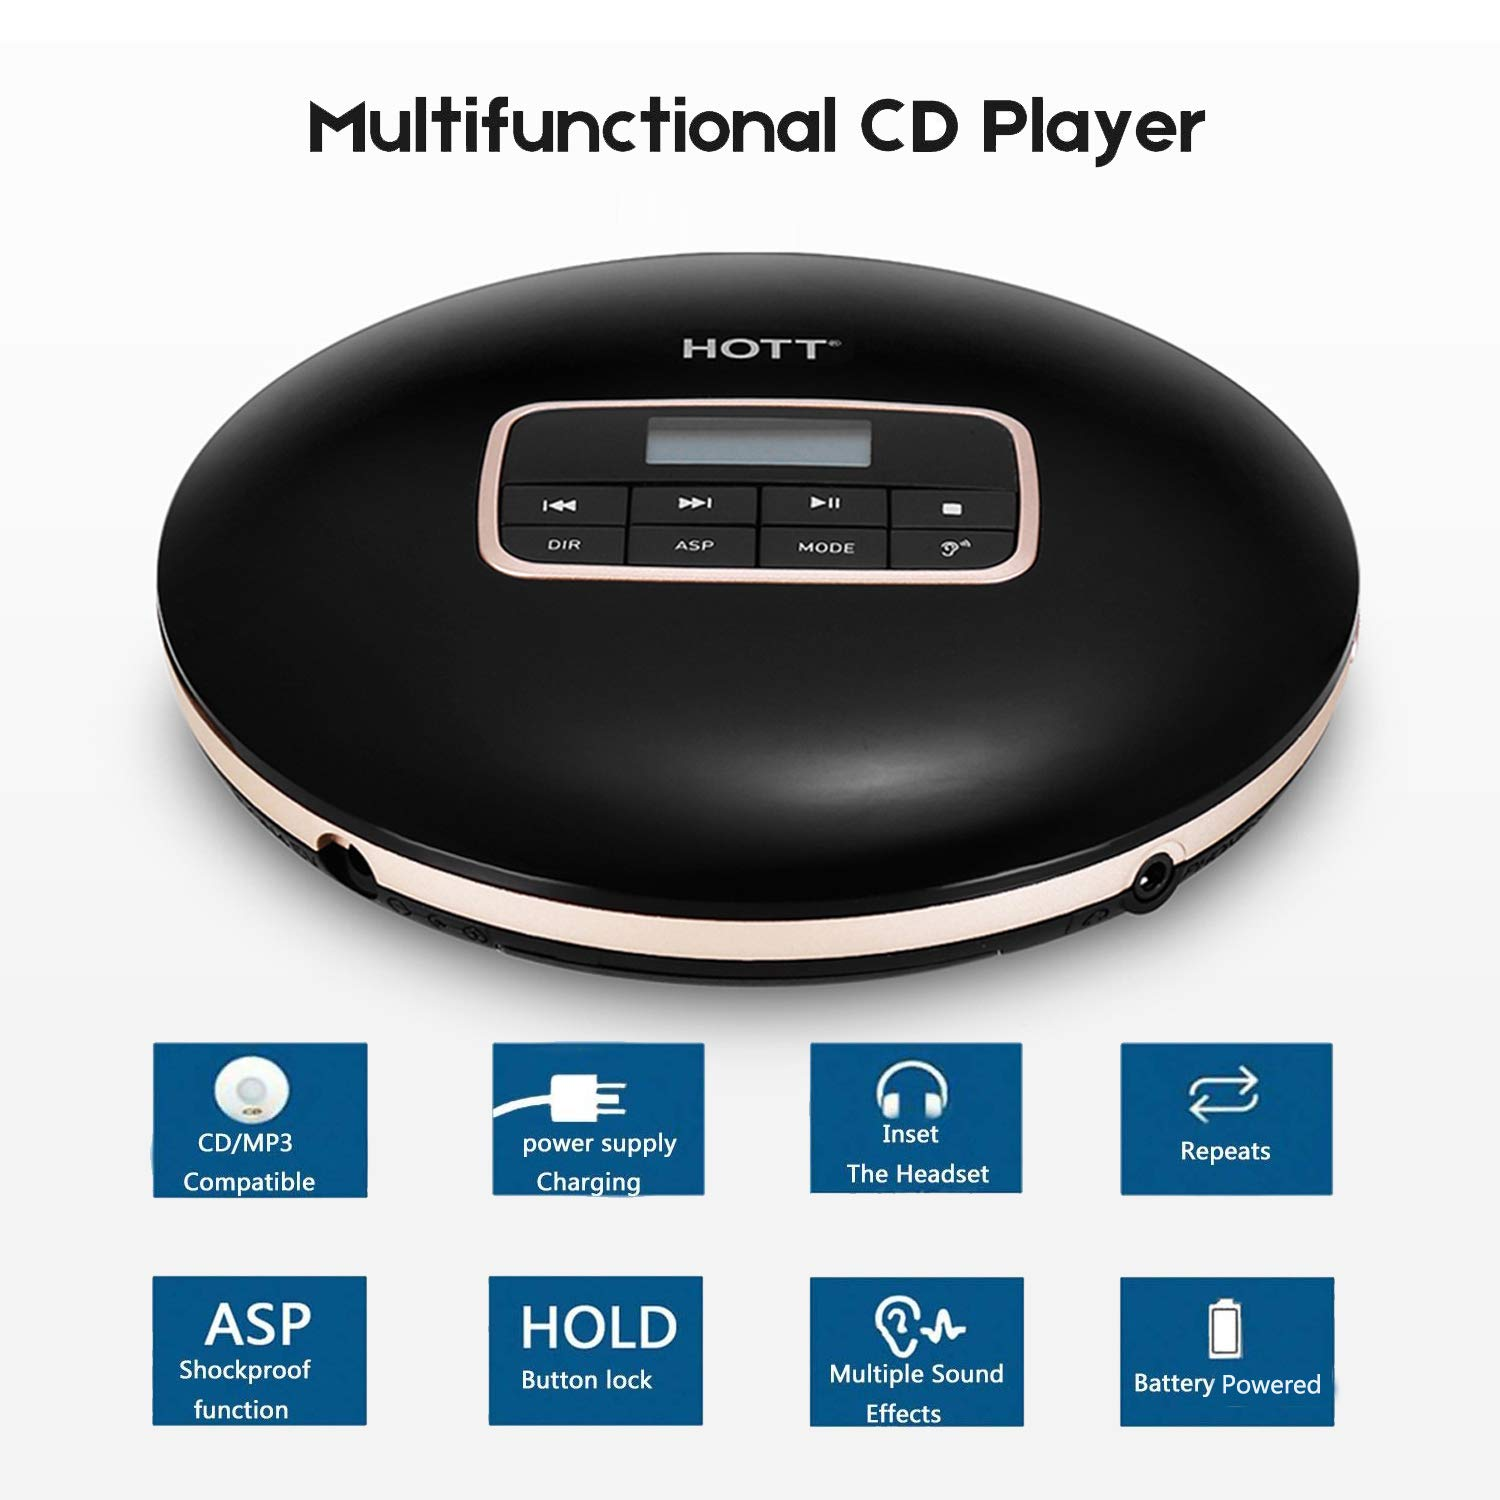 Black Portable Disc Player Anti-Slip//Anti-Shock Protection for Adults Students Kids Personal Compact CD Player with LCD Display//Headphones//USB Power Adapter Portable Bluetooth CD Player